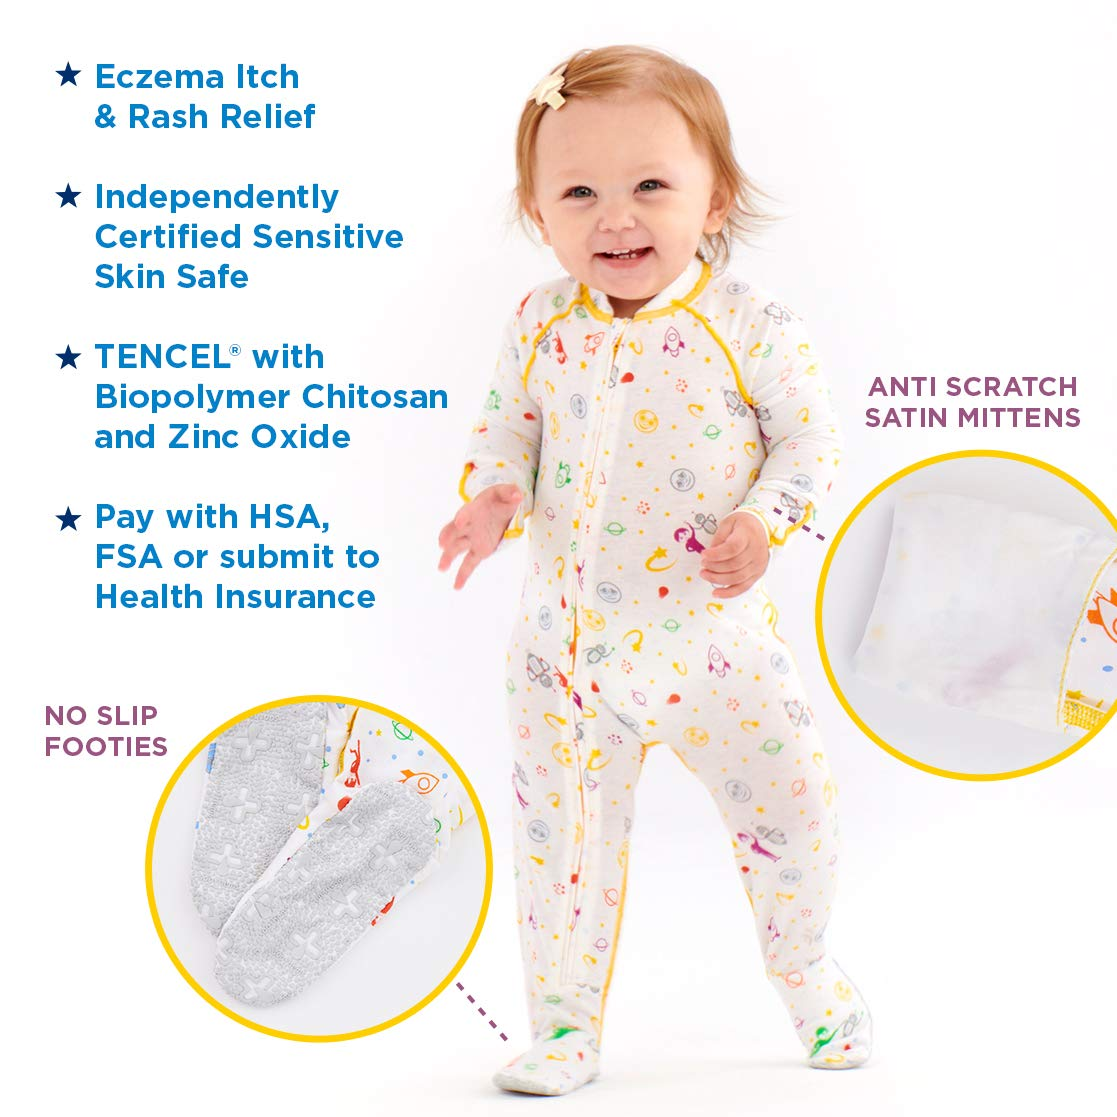 0e86489da774 Amazon.com  Eczema Sleepsuit for Babies - Itch Relief for Moderate to  Severe Baby Eczema with No Scratch Mitts - Onesies for Babies - Also - Used  as Wet ...